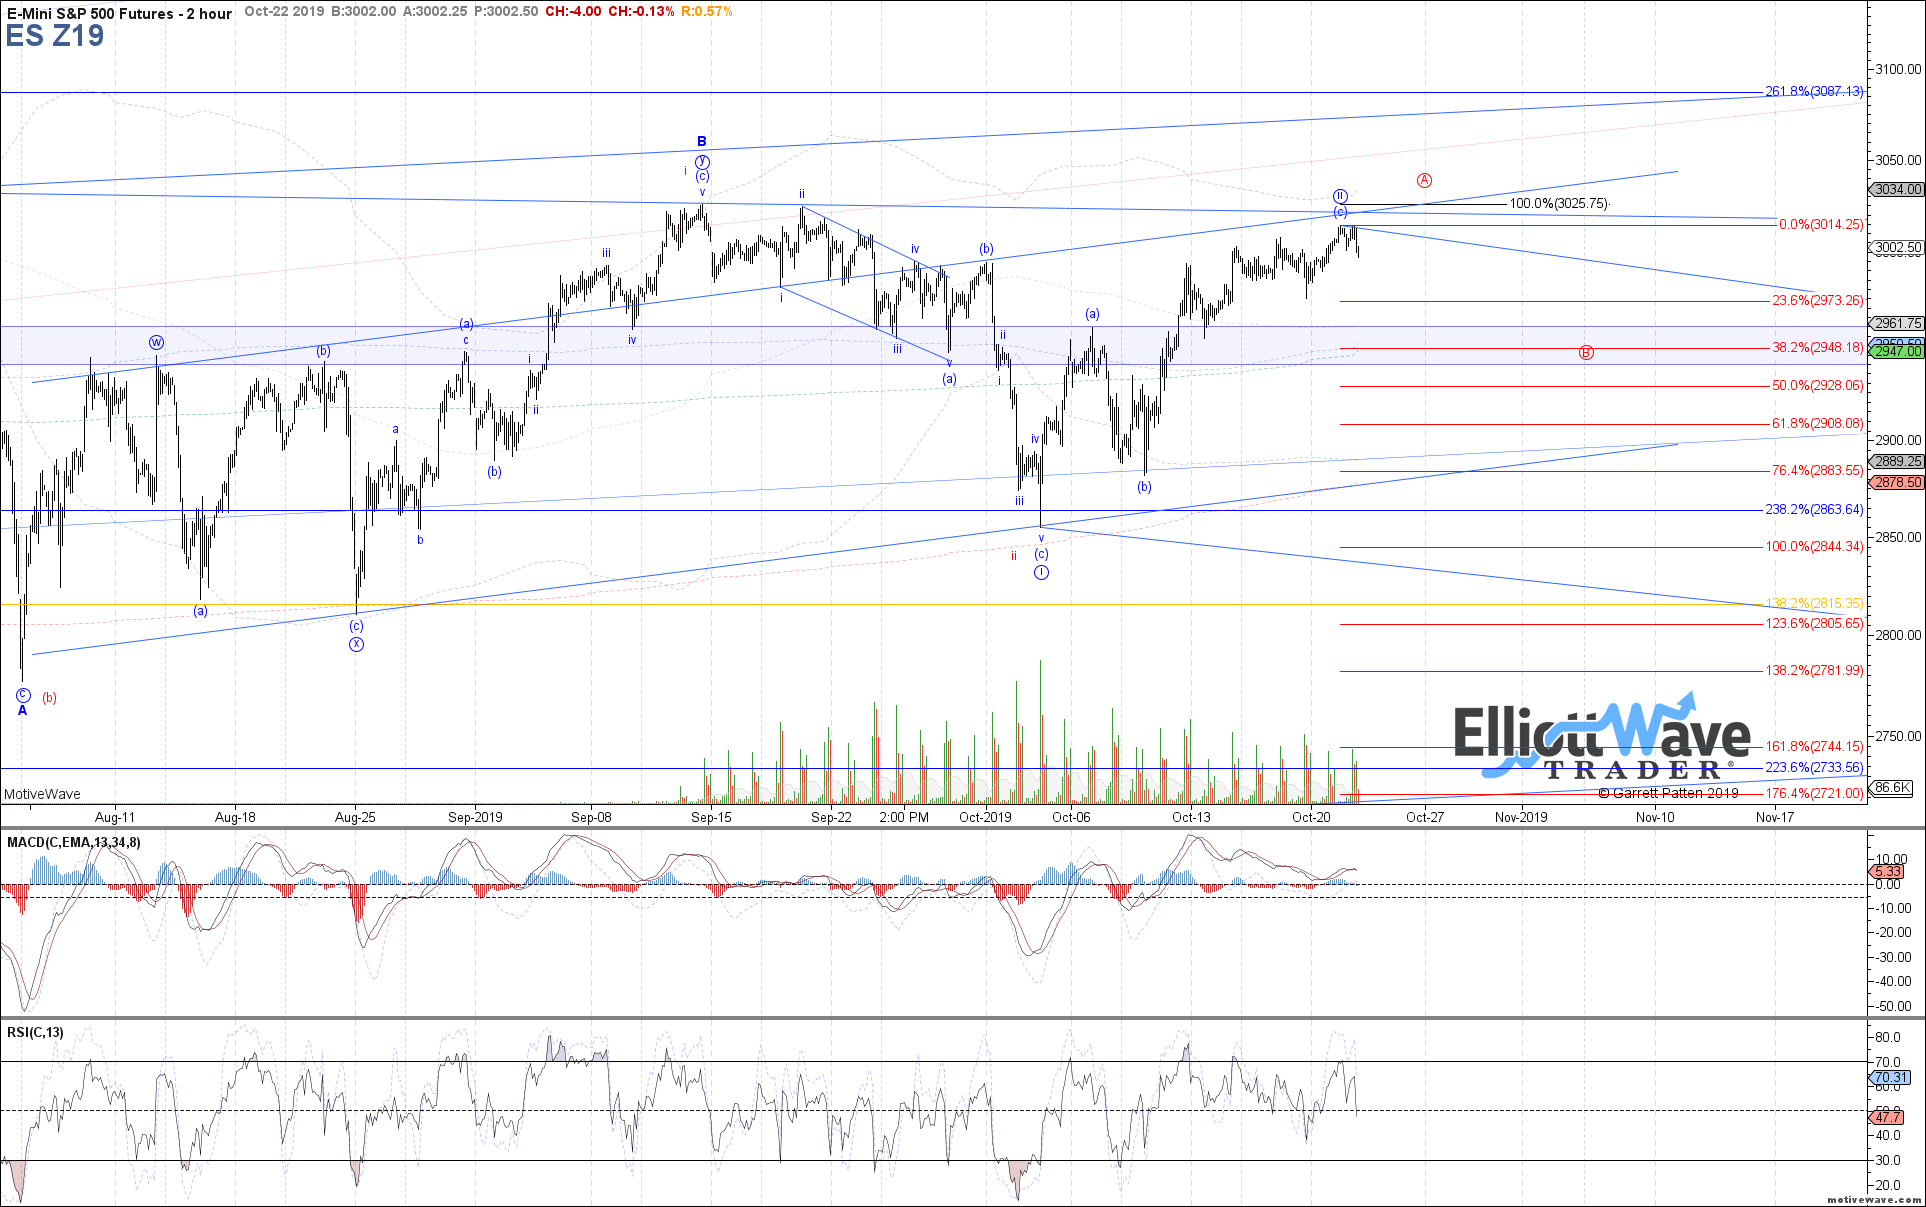 ES Z19 - Primary Analysis - Oct-22 1223 PM (2 hour)